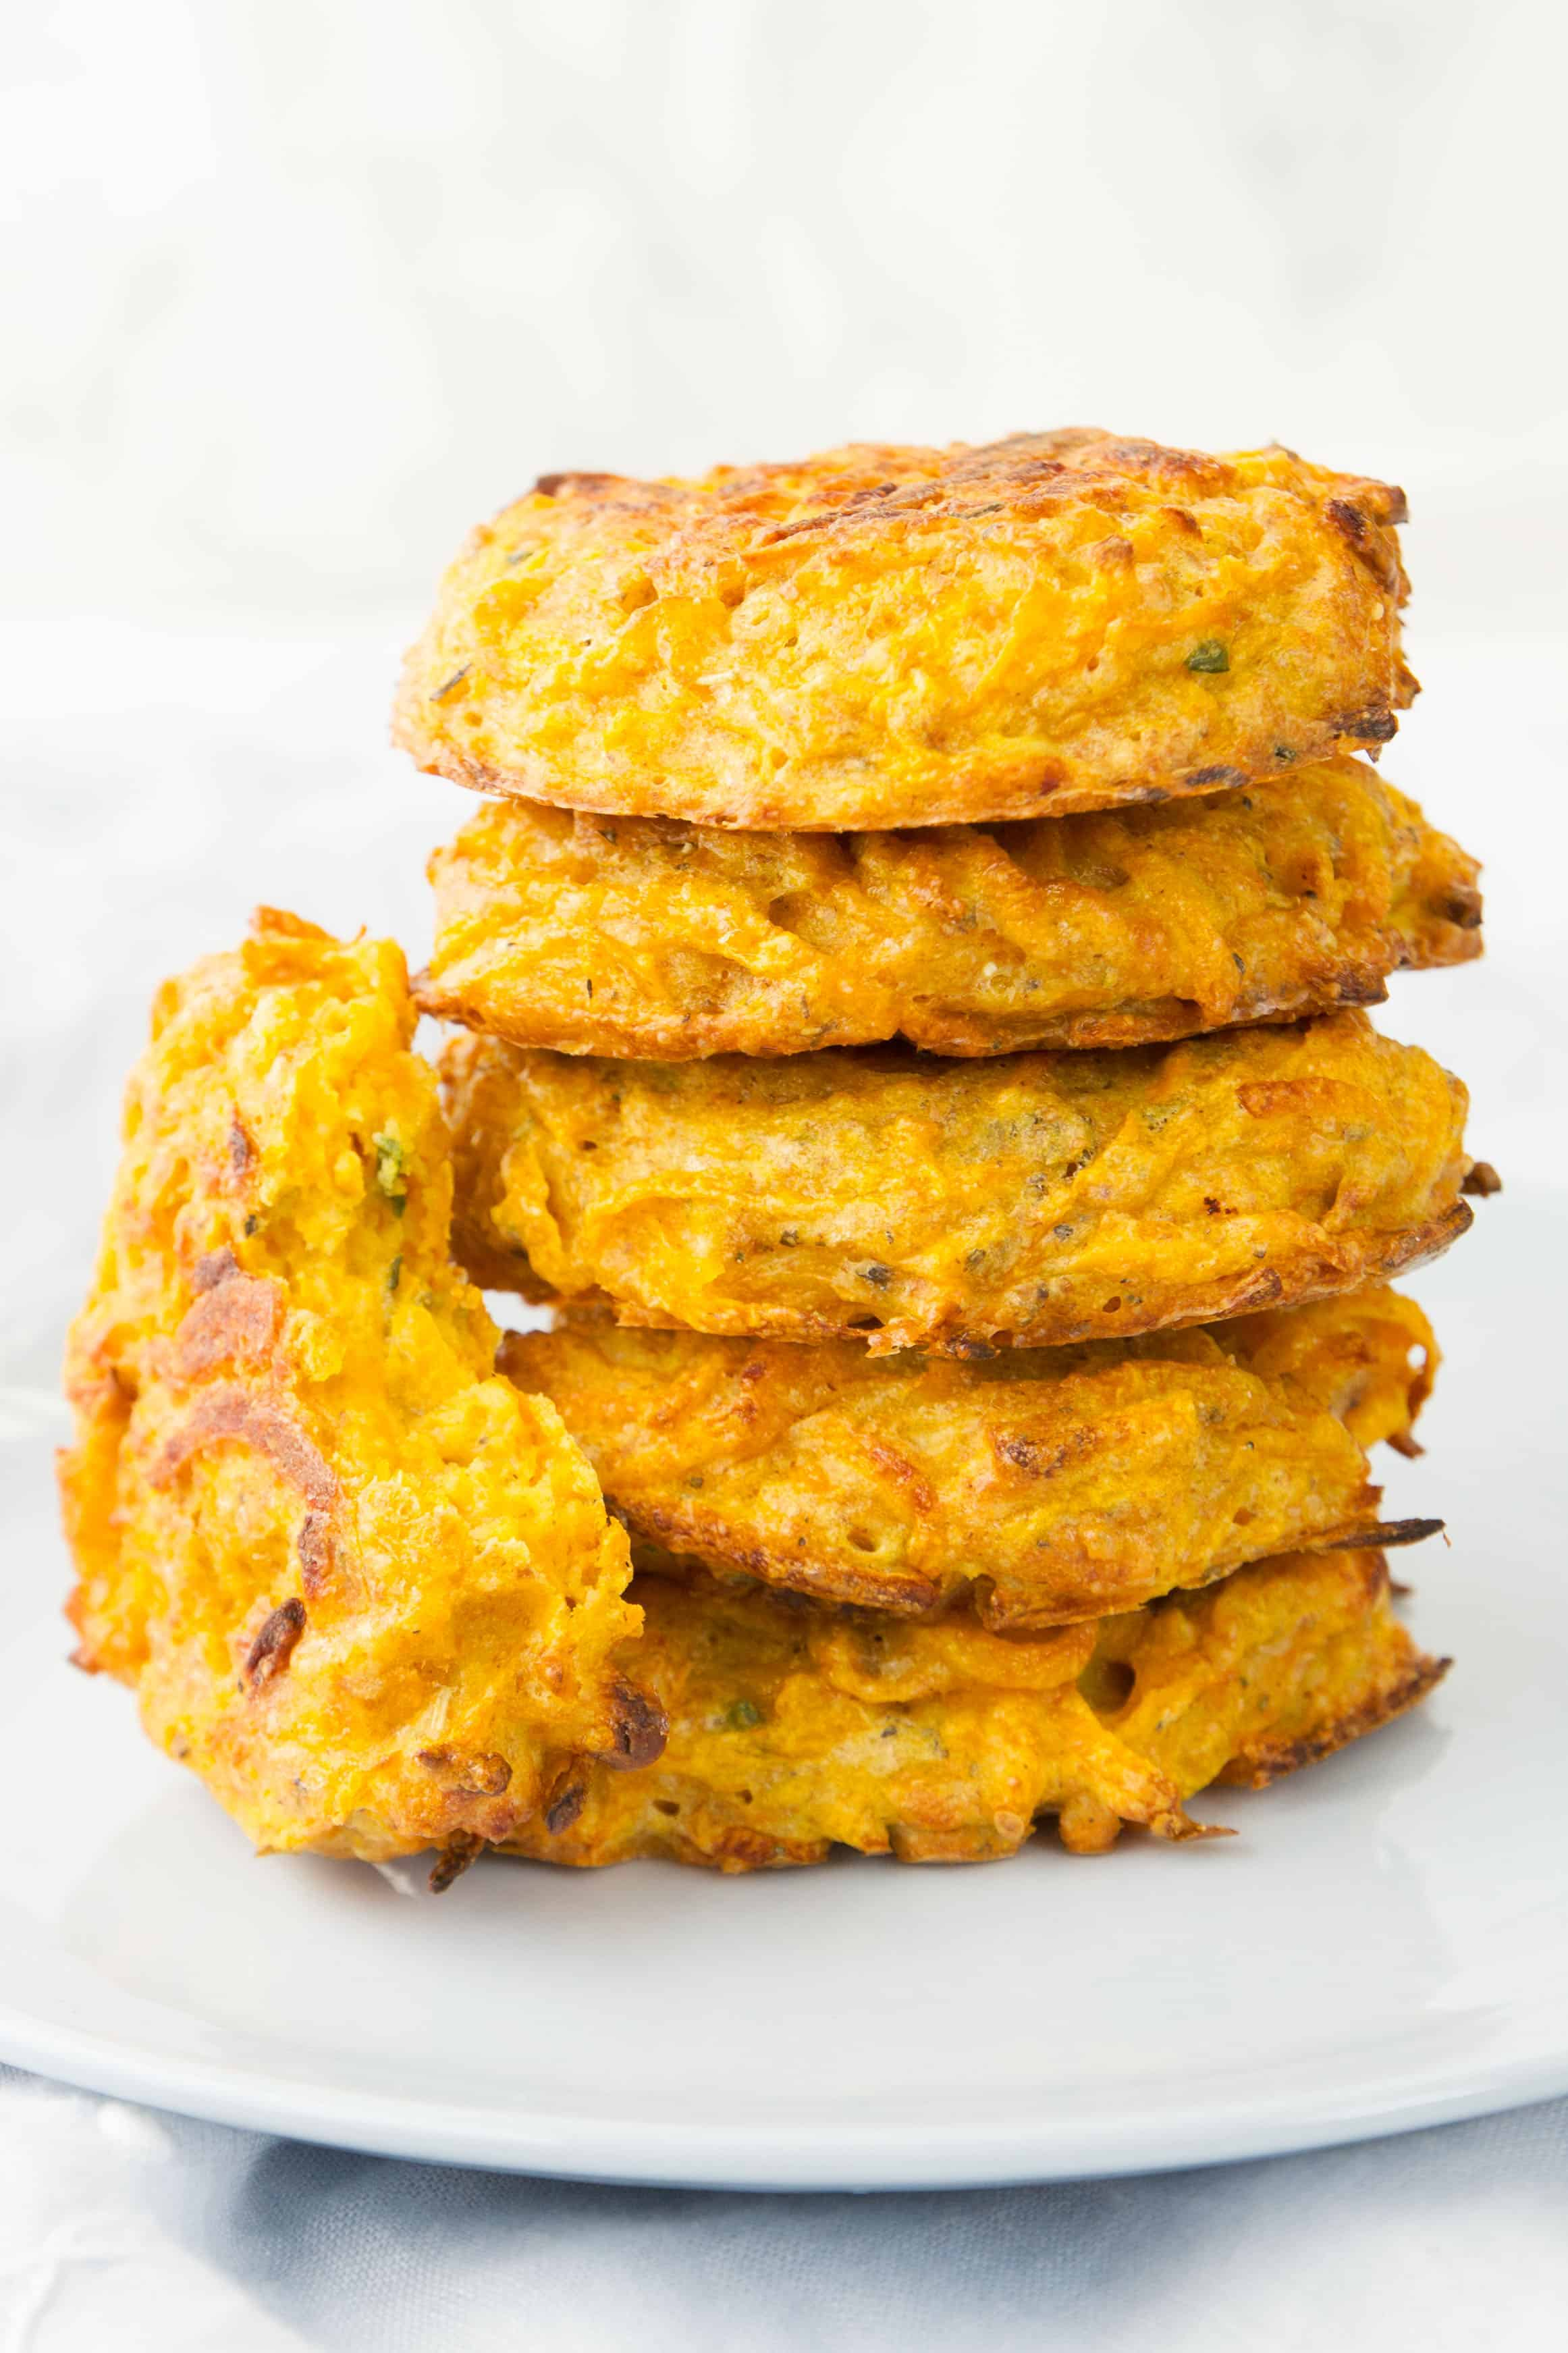 These butternut squash fritters are a tiny bit sweet, as sweet squash is, but the sage and parmesan mellow that out so the fritters are more savory than you'd think they'd be. They are just perfect, light, guilt-free and delicious! #cheapmeals #easydinnerrecipes #healthyrecipes #squash #lightmeals #easyrecipes